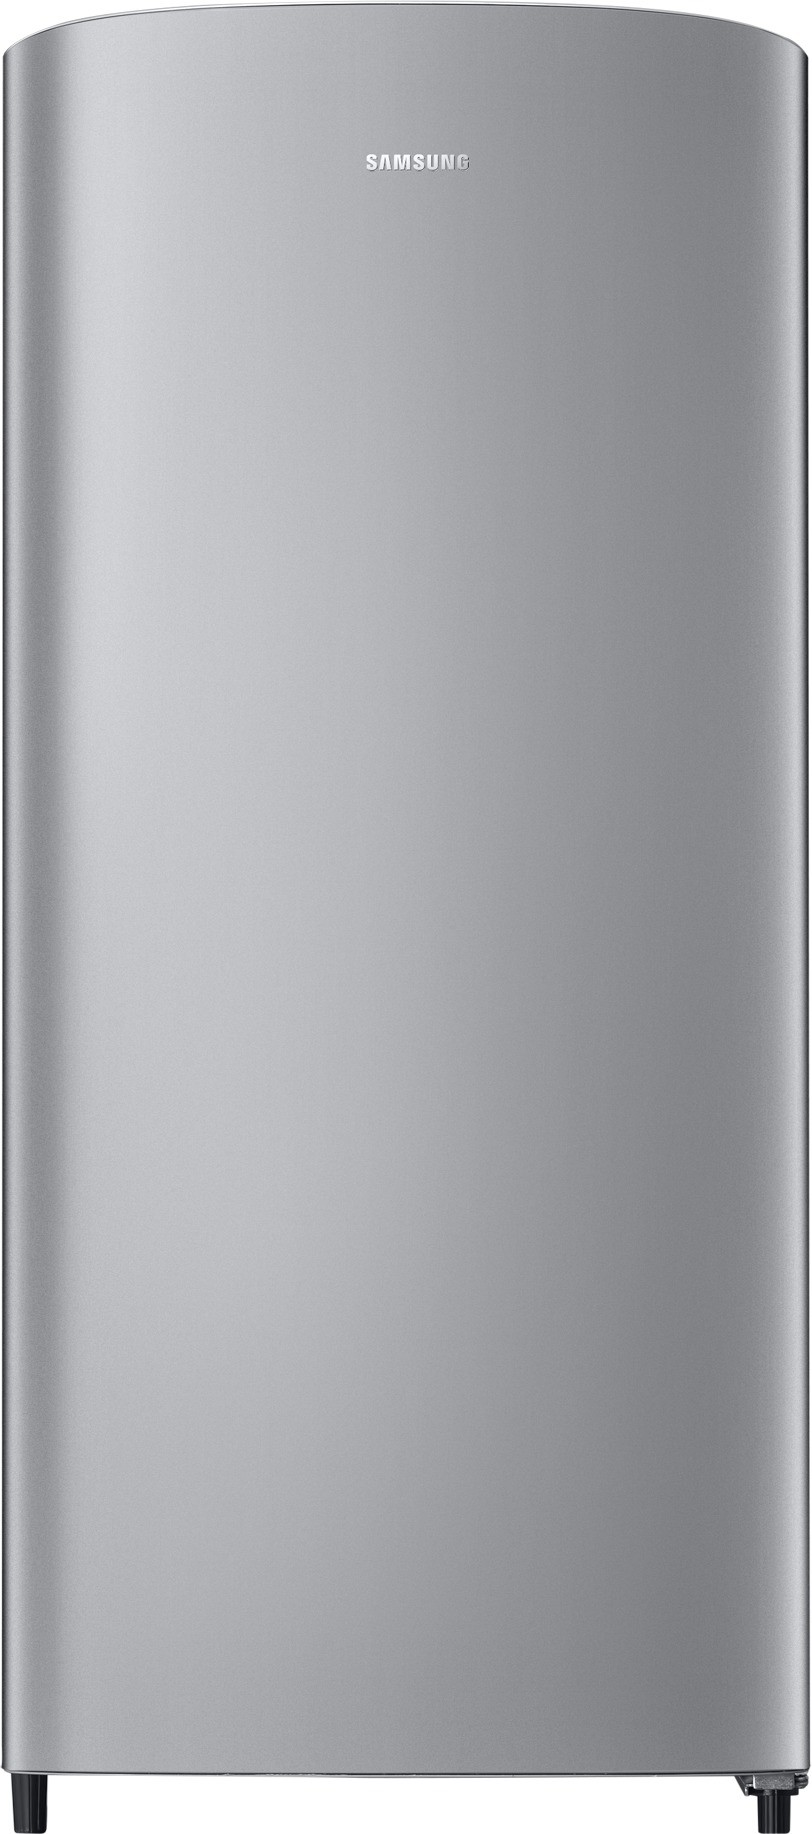 SAMSUNG RR19J20A3SE 192Ltr Single Door Refrigerator